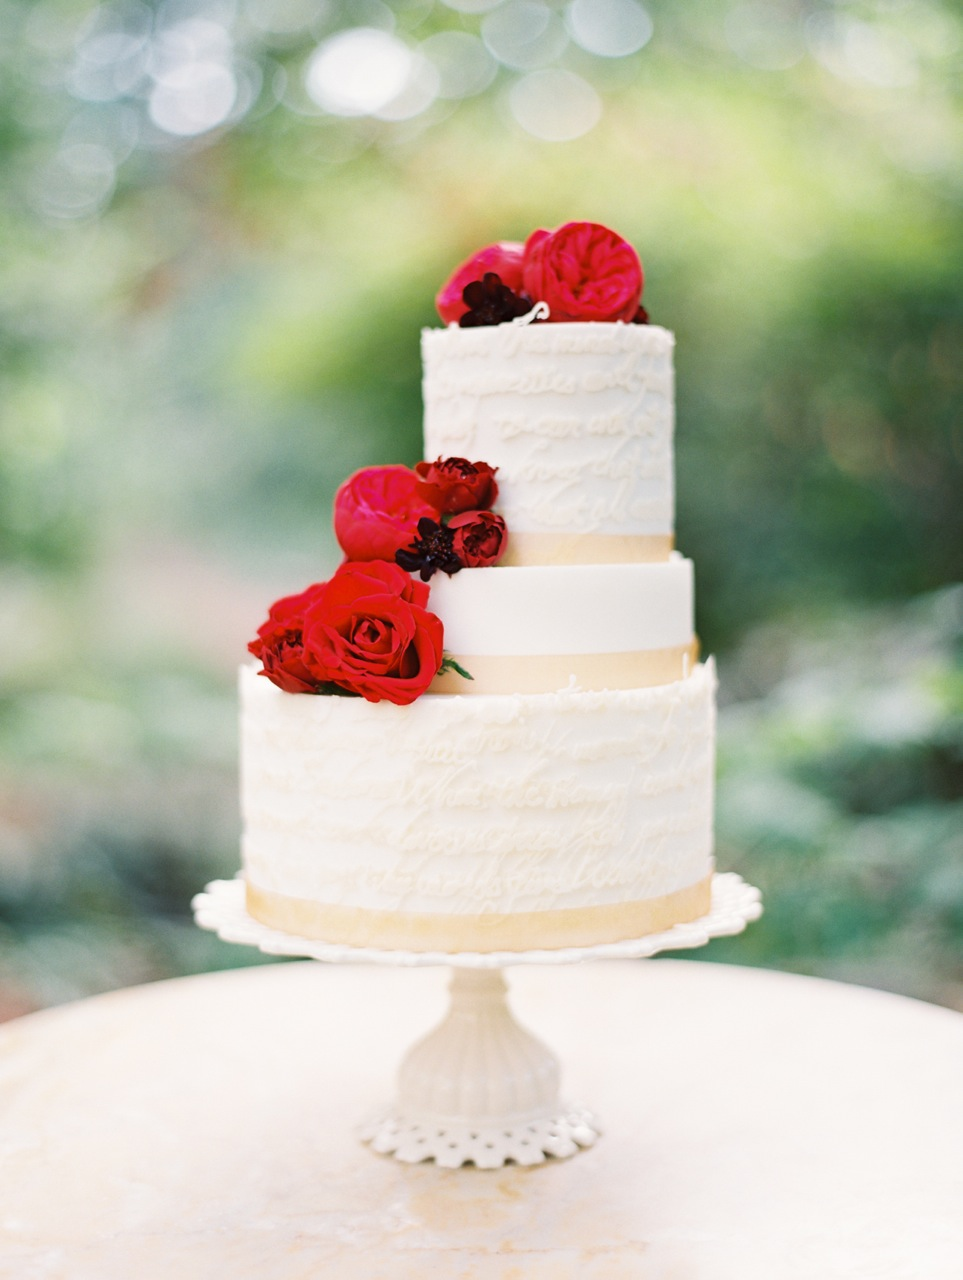 Cakes, Real Weddings, Wedding Style, ivory, Floral Wedding Cakes, Wedding Cakes, West Coast Real Weddings, Garden Real Weddings, Garden Weddings, Romantic Real Weddings, Romantic Weddings